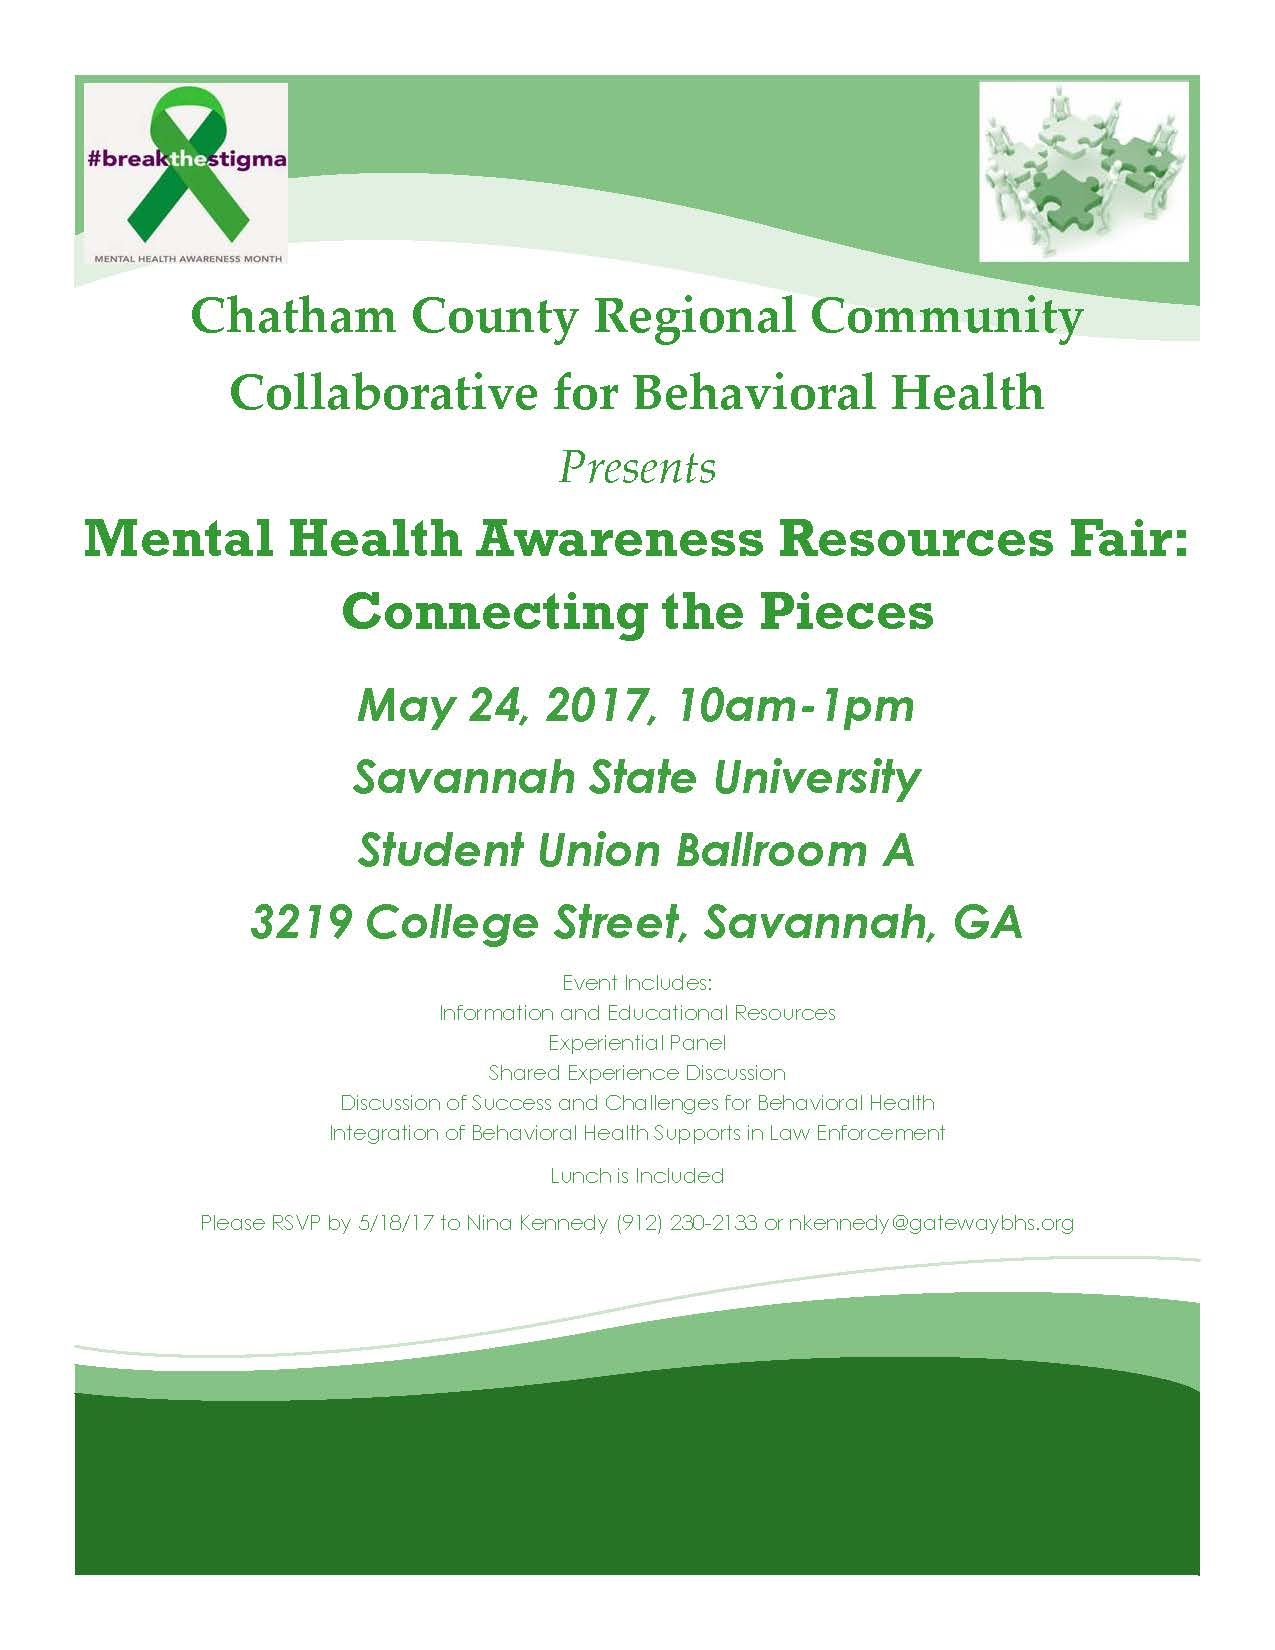 Mental Health Awareness Resources Fair Connecting The Pieces